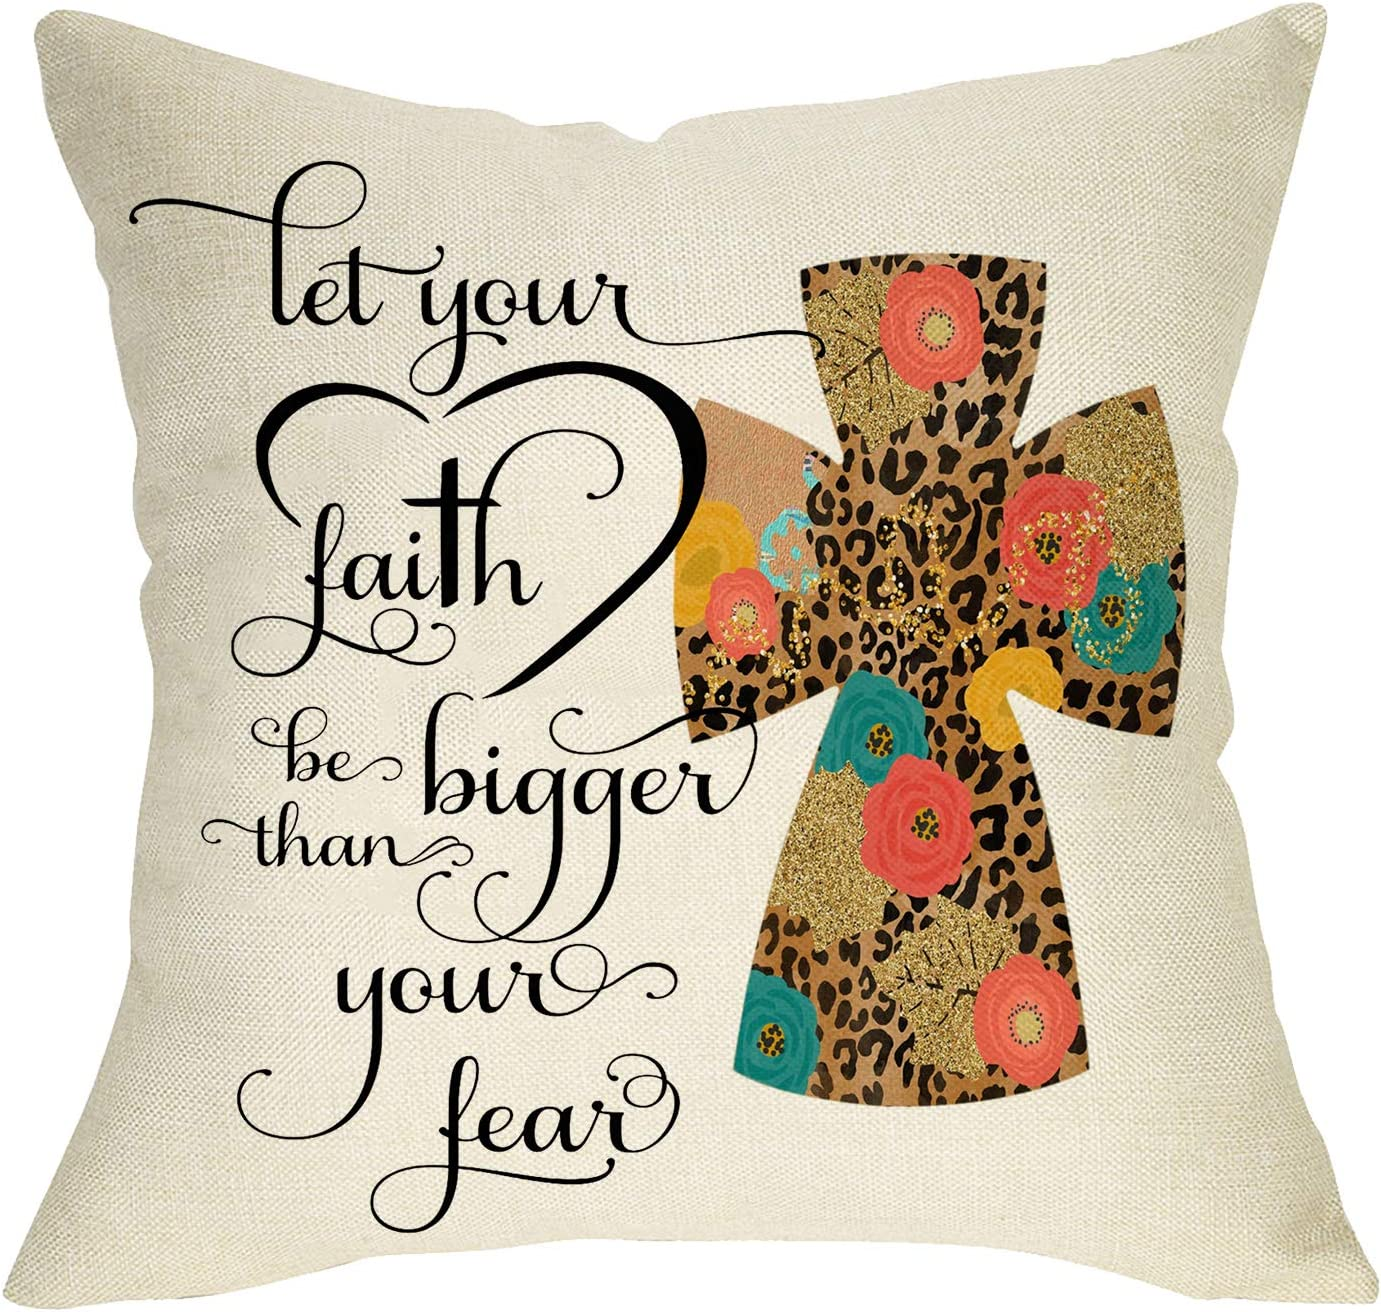 Softxpp Leopard Cross Decorative Throw Pillow Cover, Let Your Faith Be Bigger Than Your Fear Sign Cushion Case, Spring Summer Home Decorations Easter Religious Farmhouse Decor for Sofa Couch 18 x 18